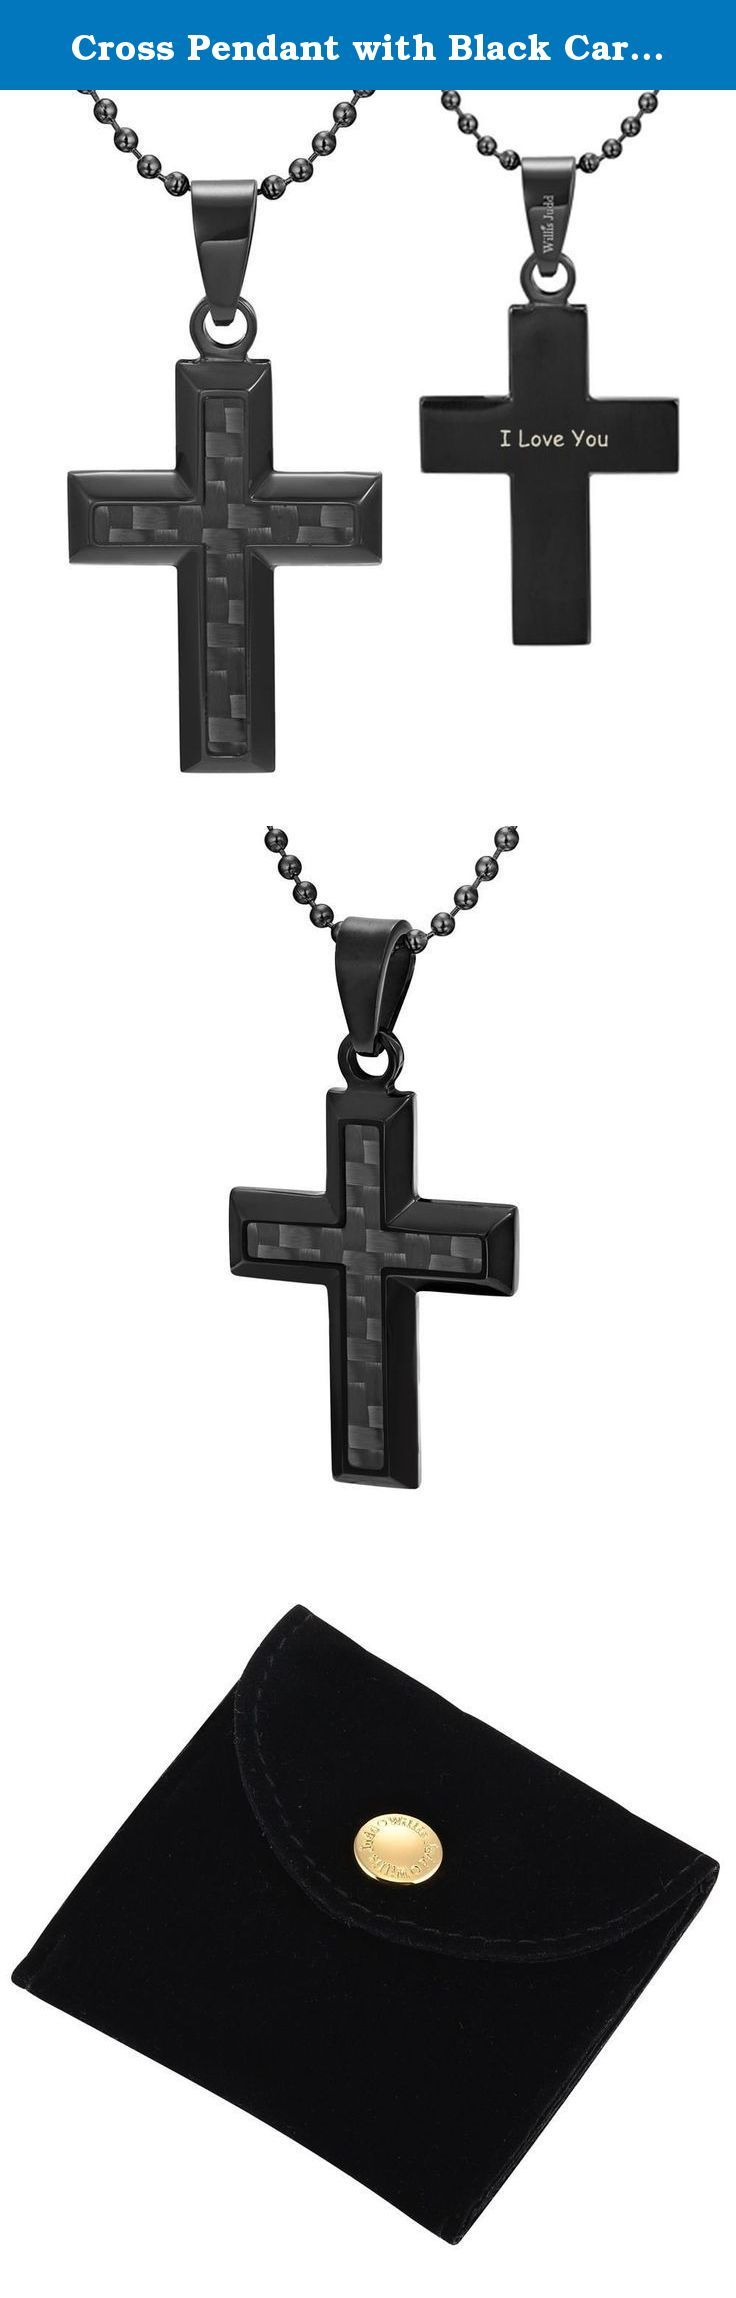 """Cross Pendant with Black Carbon Fiber engraved I Love You with 22"""" chain & Gift Pouch By Willis Judd. From the Willis Judd Carbon collection is this black stainless steel pendant that features a carbon fiber inlay. Engraved on the back is the phrase I Love You, a dear a thoughtful message for a loved one. As seen in the picture, the black stainless steel really complements the carbon fiber and creates an effect that will definitely stand out in a crowd and make ones outfit complete…"""